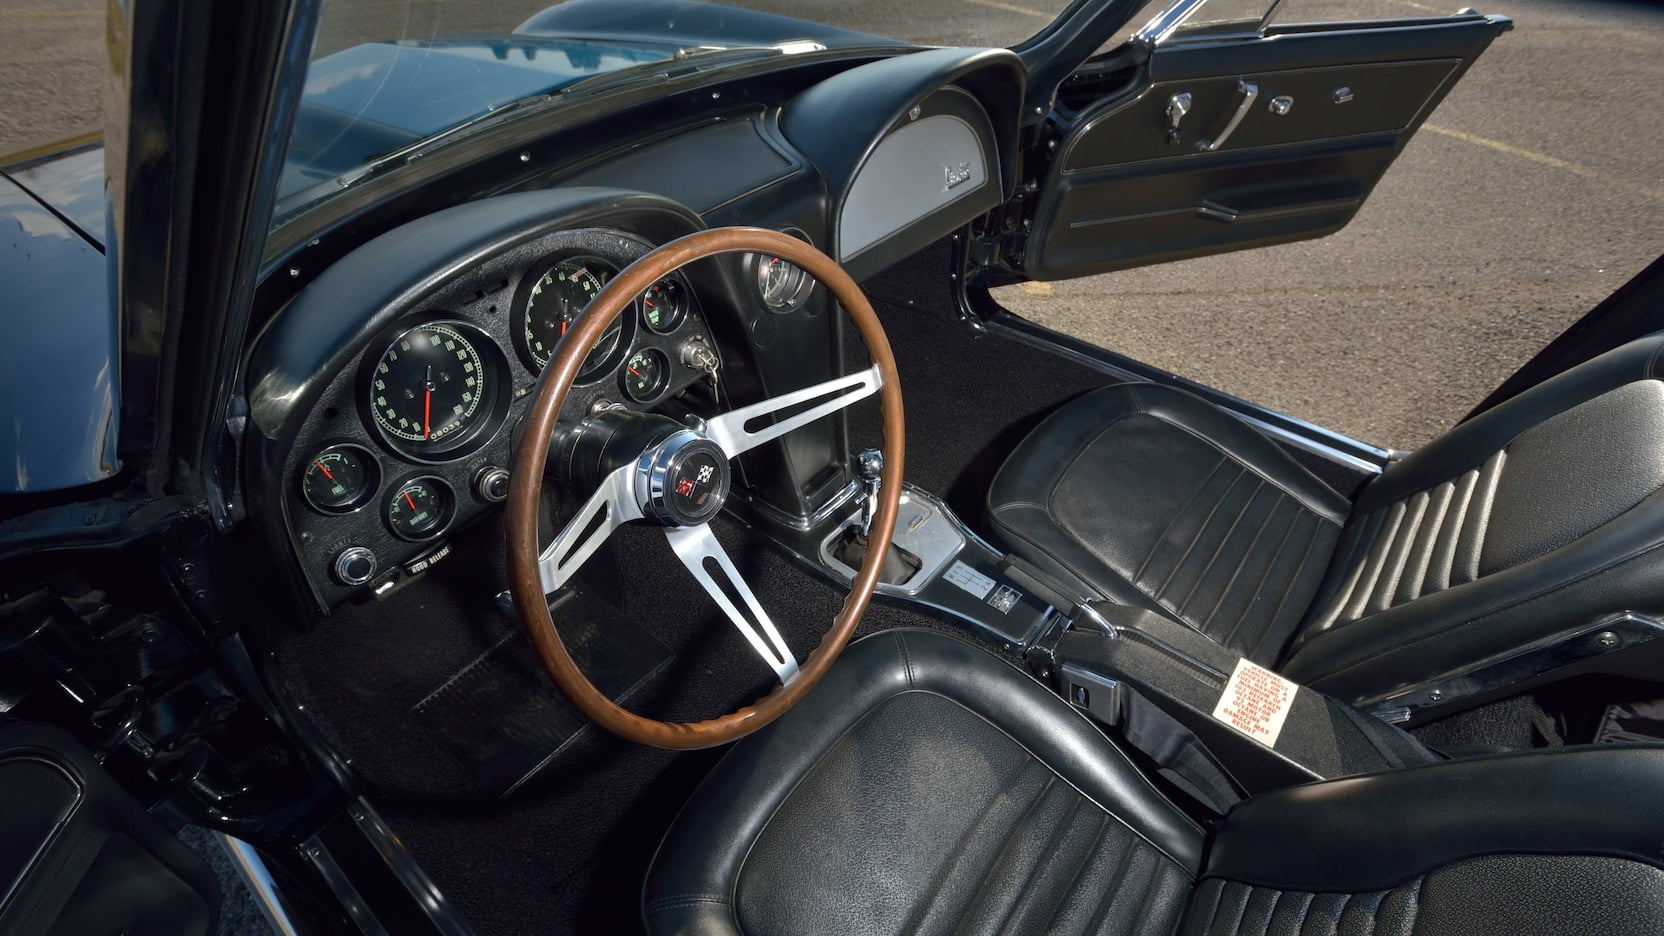 1967 Chevrolet Corvette L88 Convertible Interior